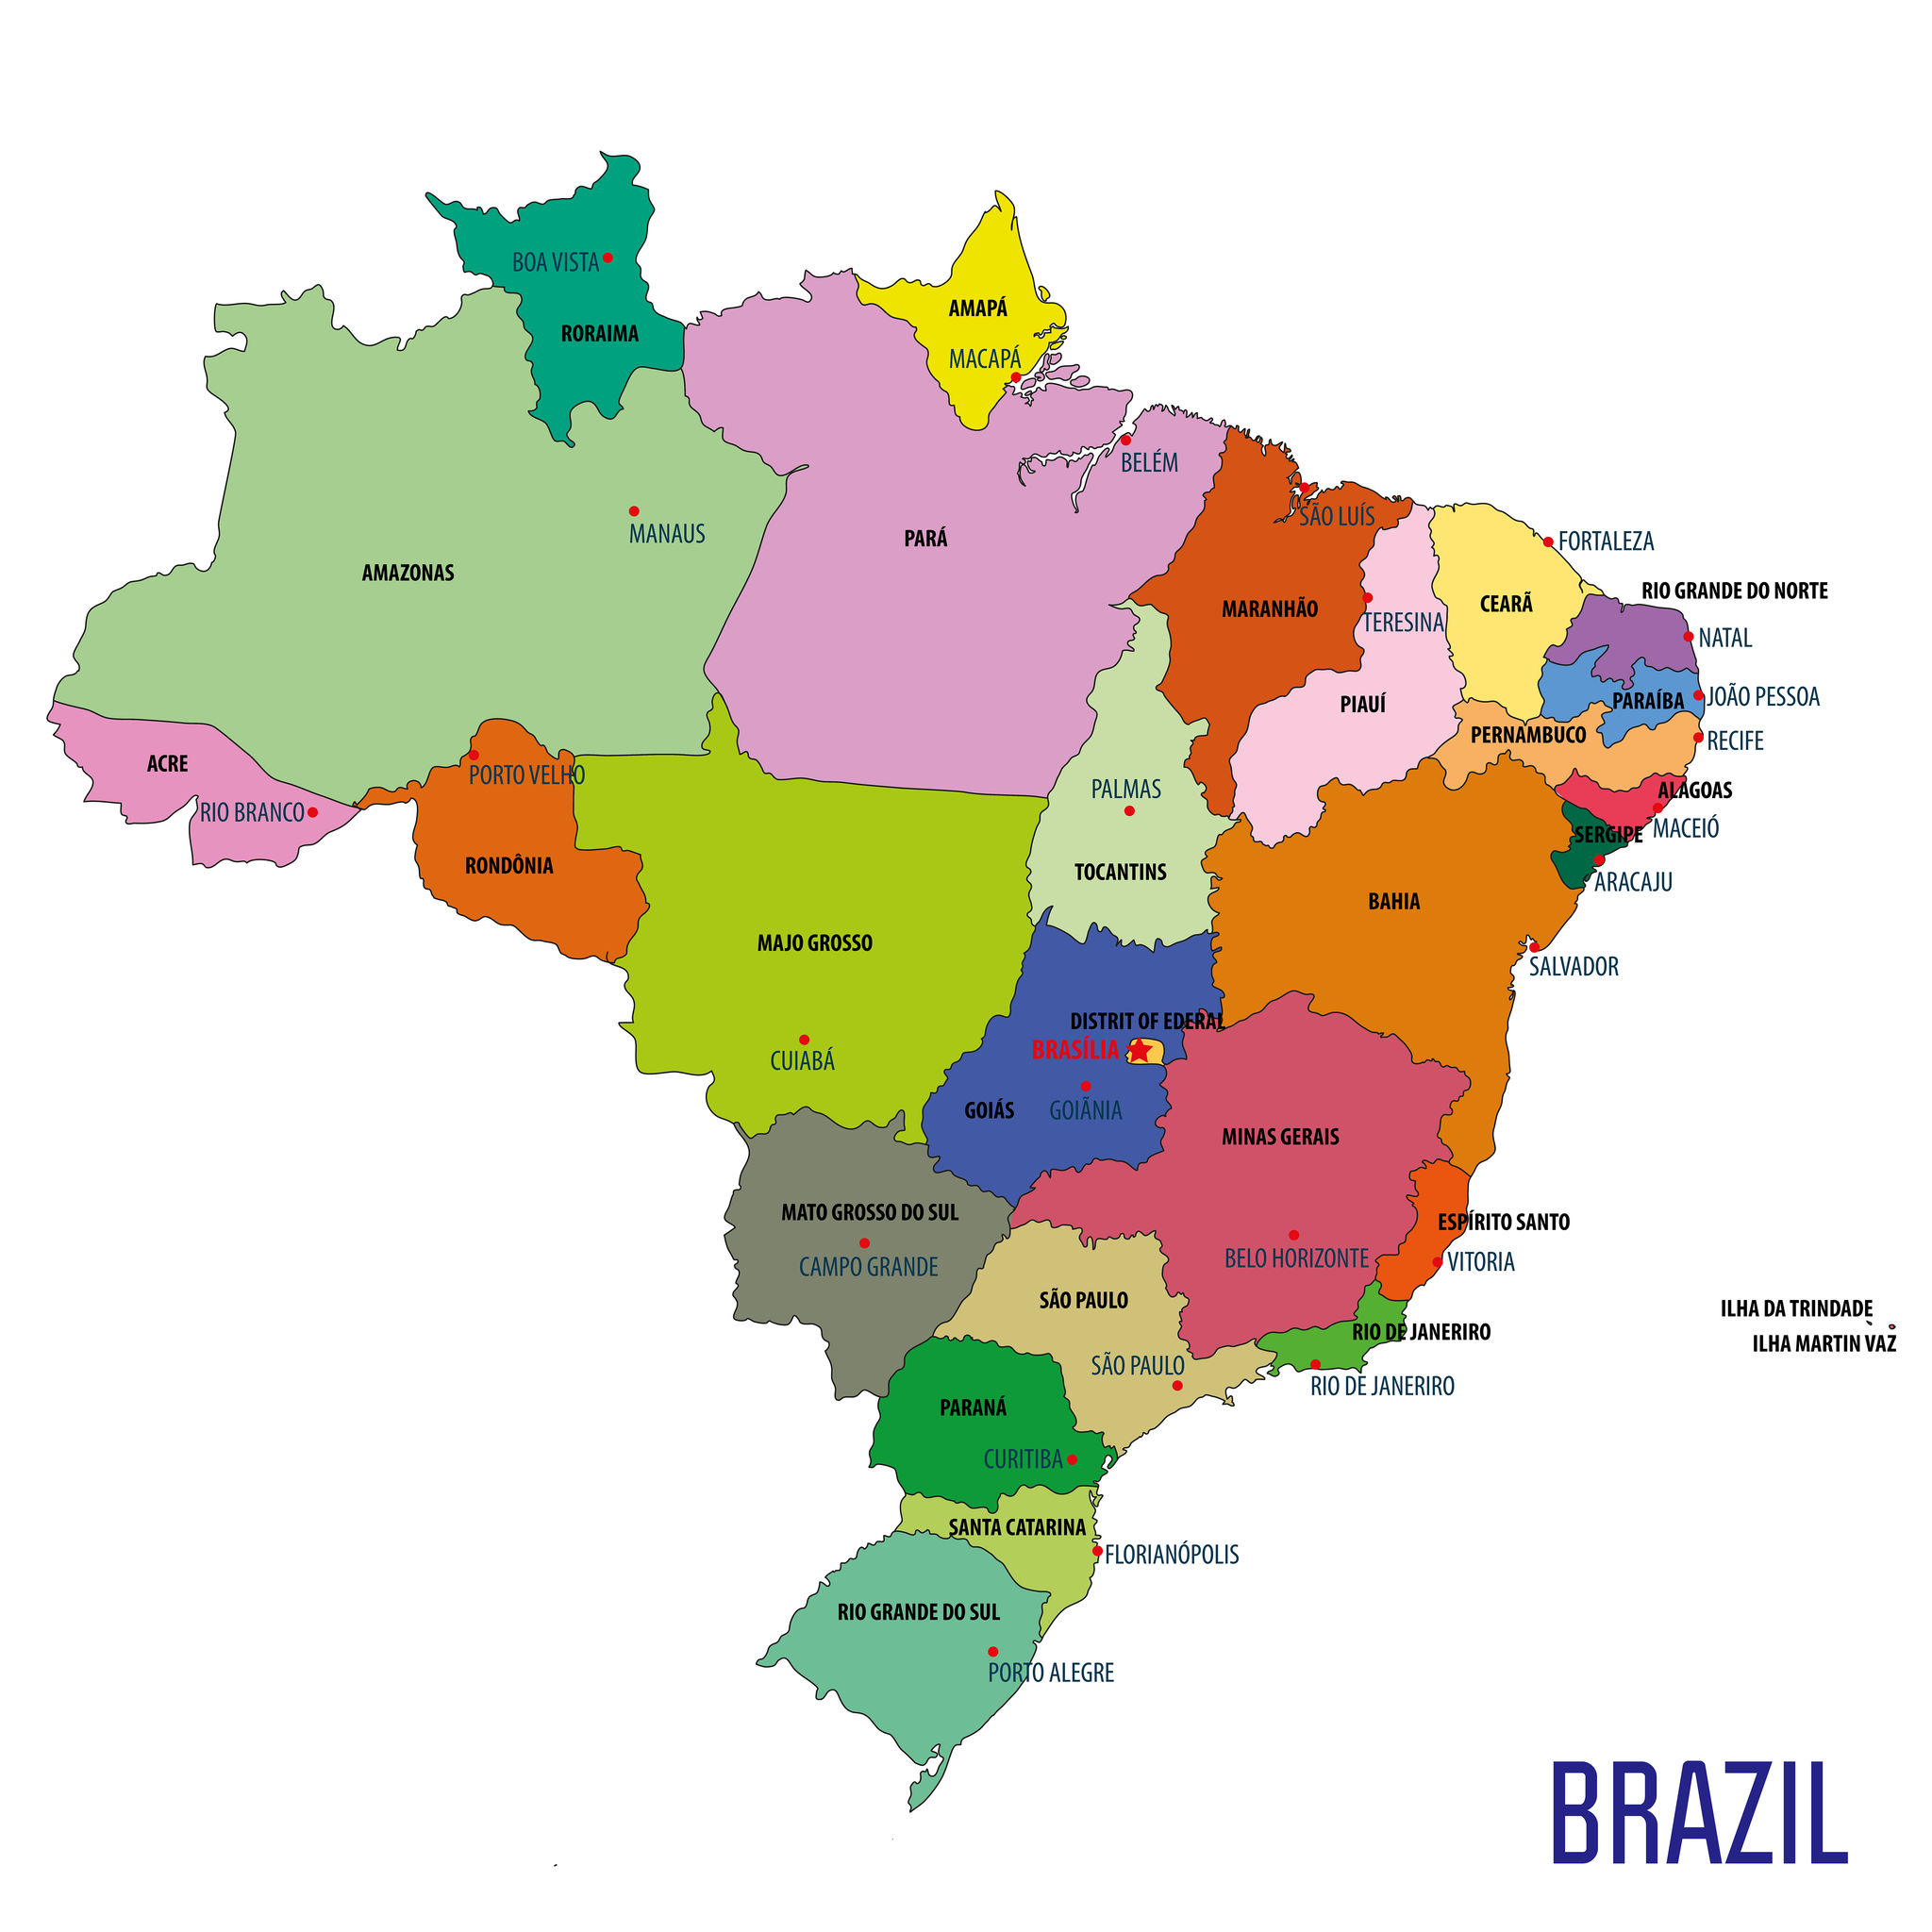 The 26 states of Brazil, that each play host to State Football.